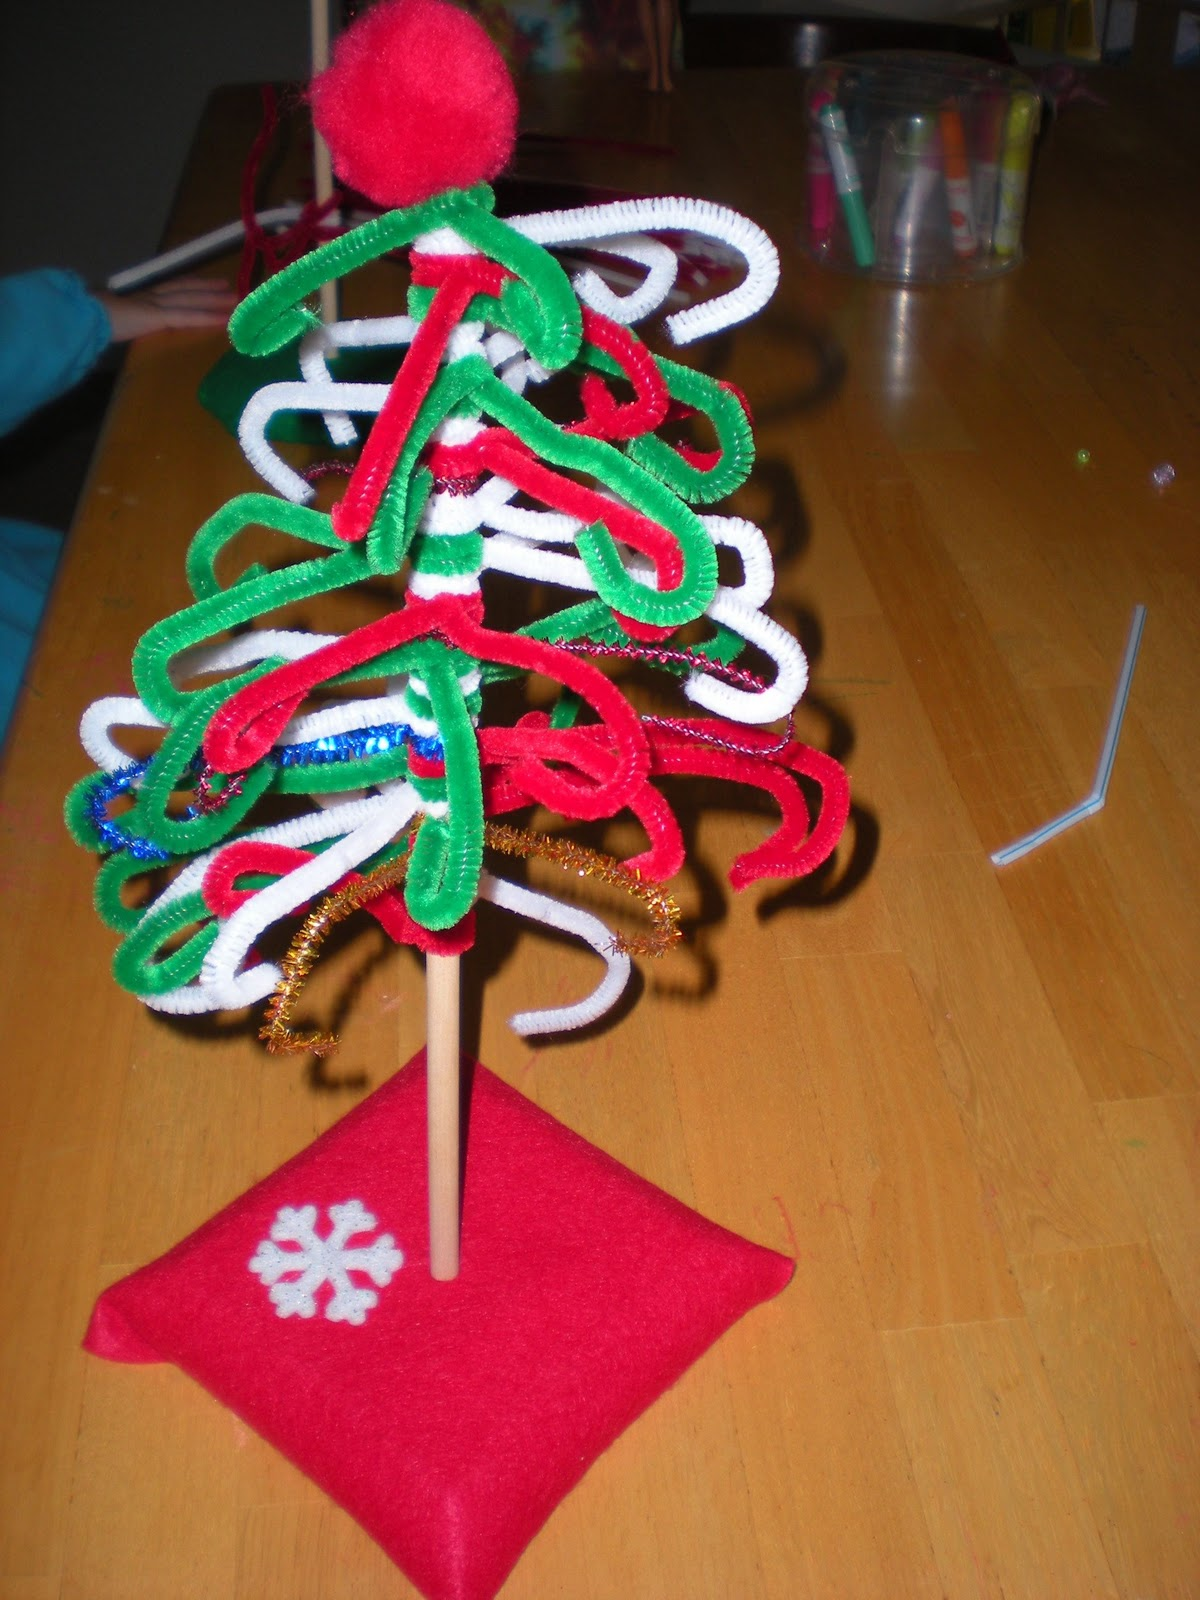 Sippy cup central pipe cleaner tree for Pipe cleaner christmas crafts